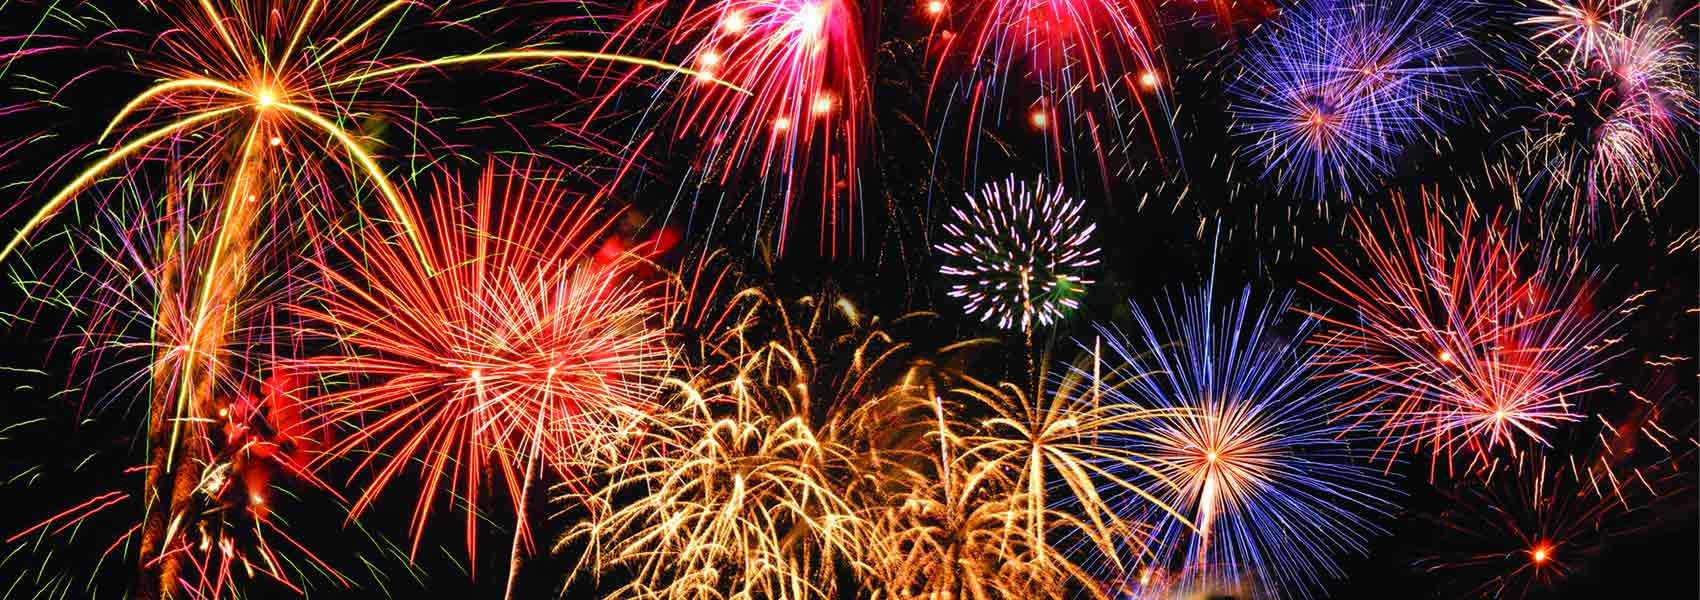 B P A Blog By Young People In Gatesheadbonfire Night